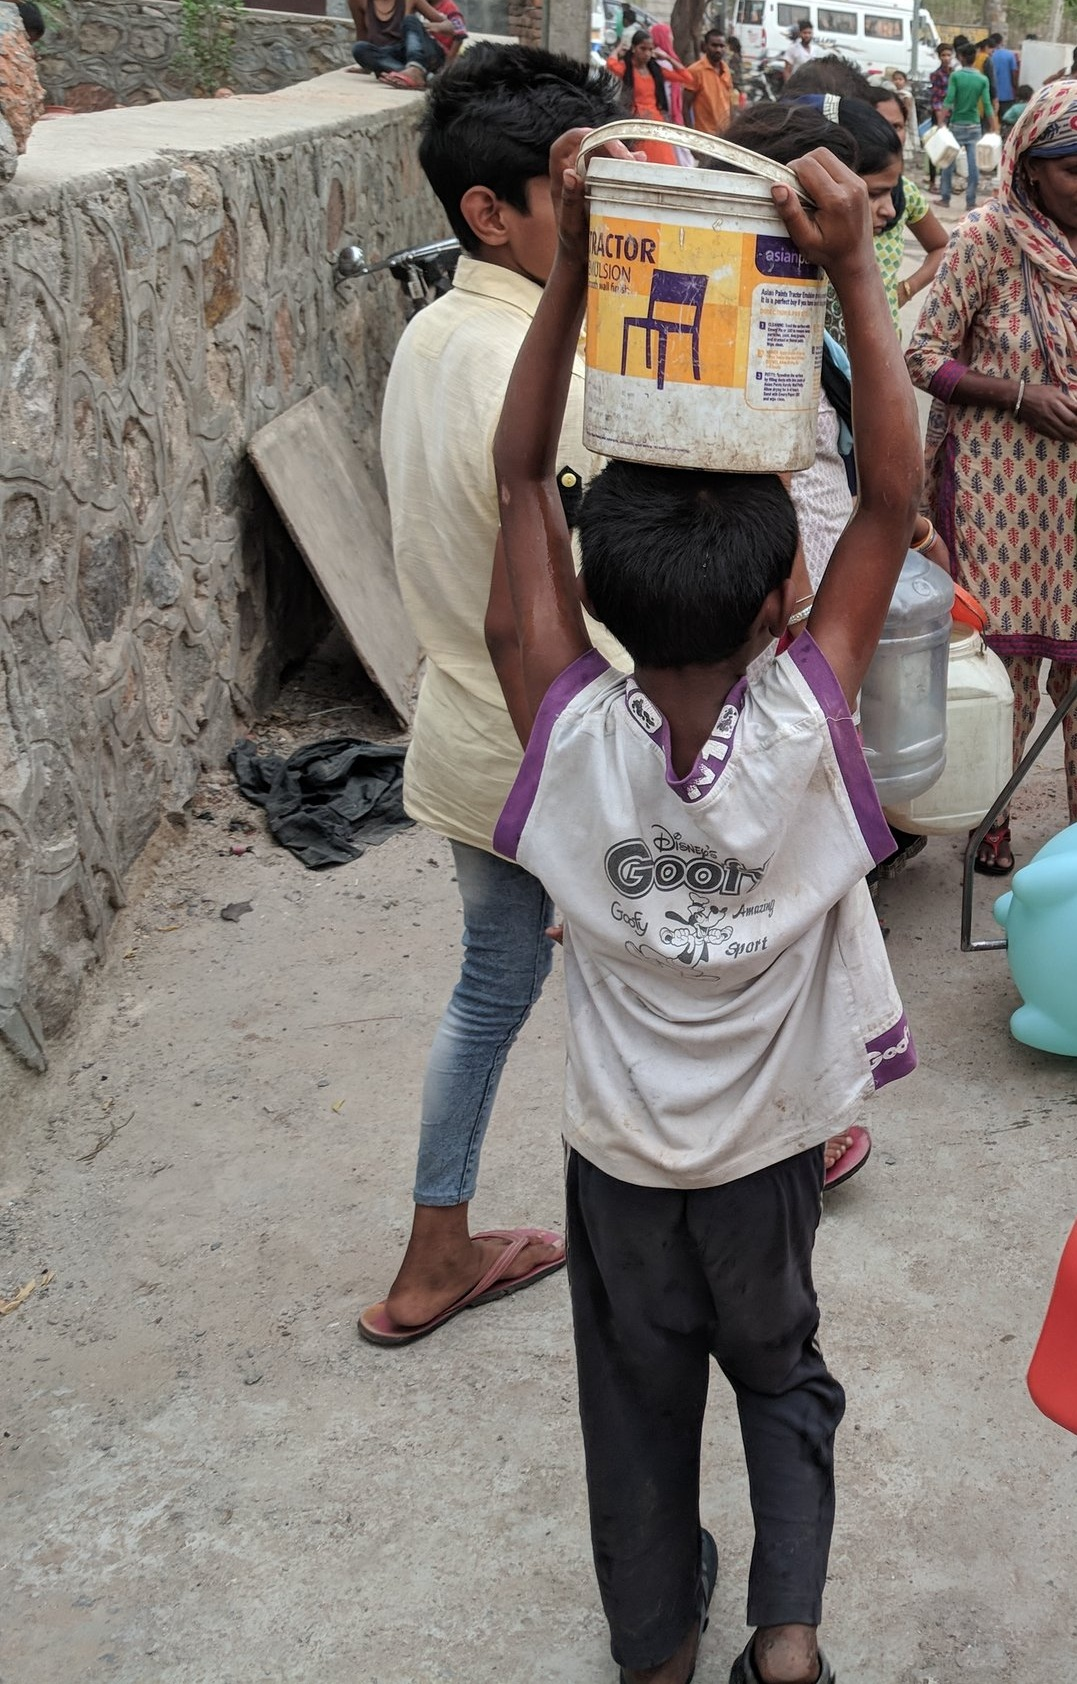 Fetching Water - Women and children are often responsible for carrying heavy containers of water home multiple times per day. This consumes most of their time and causes chronic pain.